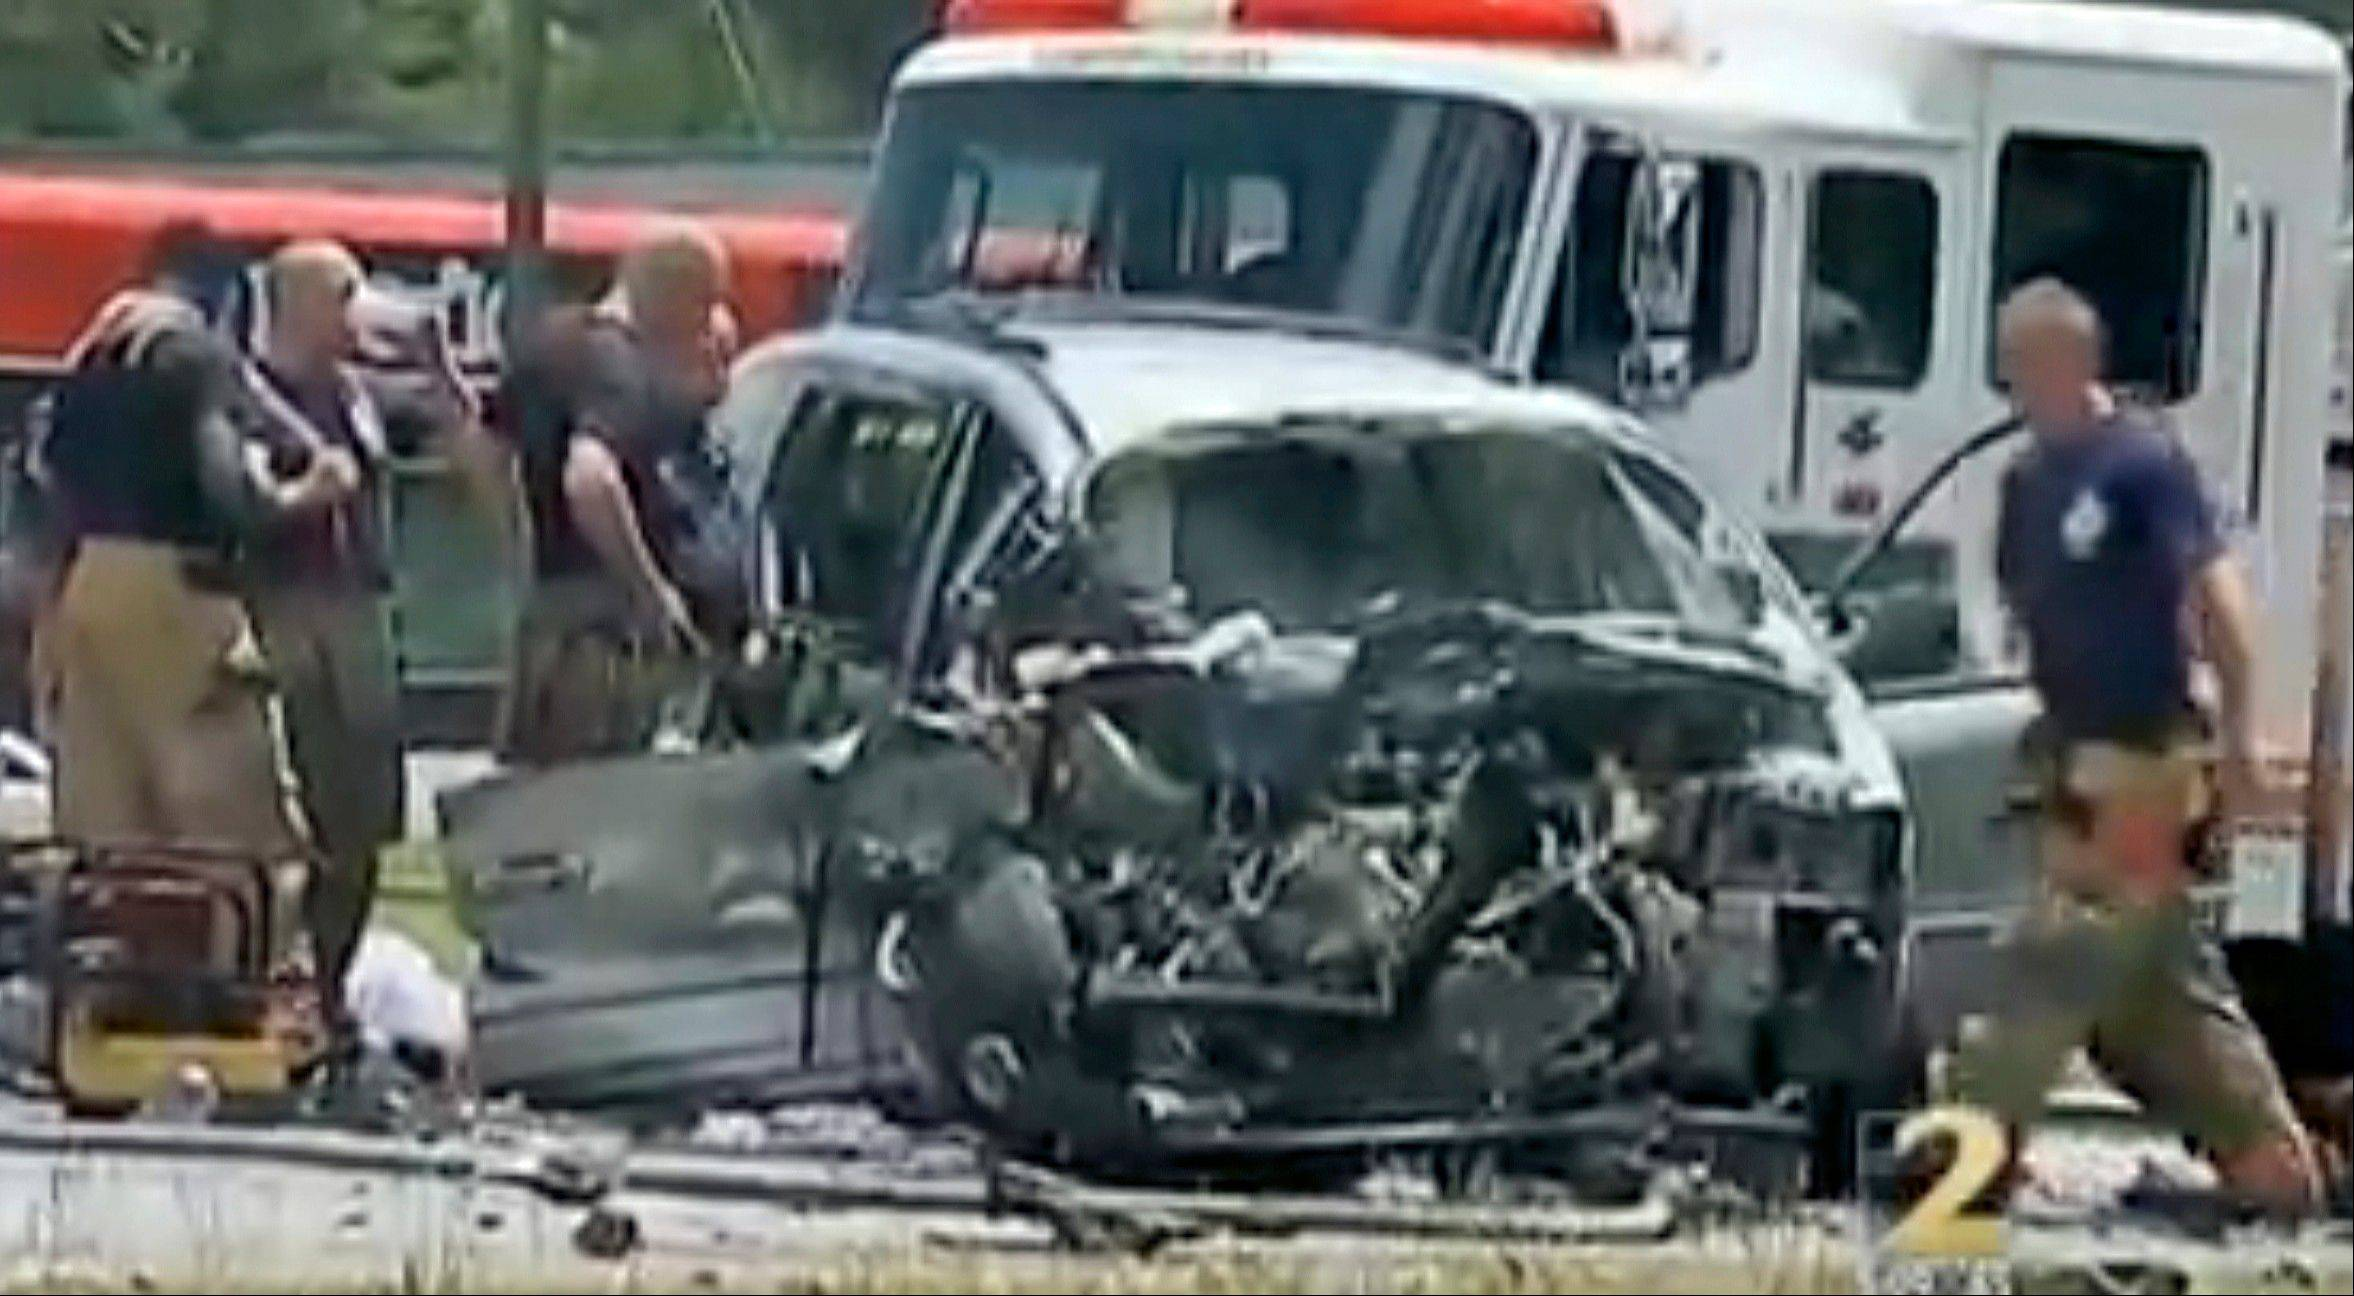 "In this image taken from video, emergency personnel work the scene of a car crash Friday, May 31, 2013, in Jonesboro, Ga. Former NBA All-Star guard Daron ""Mookie"" Blaylock was on life support at a hospital Friday after his SUV crossed the center line and crashed head-on into a van in suburban Atlanta, police said. Clayton County (Ga.) police spokesman Clarence Cox says the man and woman riding in the van were also injured and to the hospital. Their names and conditions were not immediately available. (AP Photo/WSB-TV) MANDATORY CREDIT"